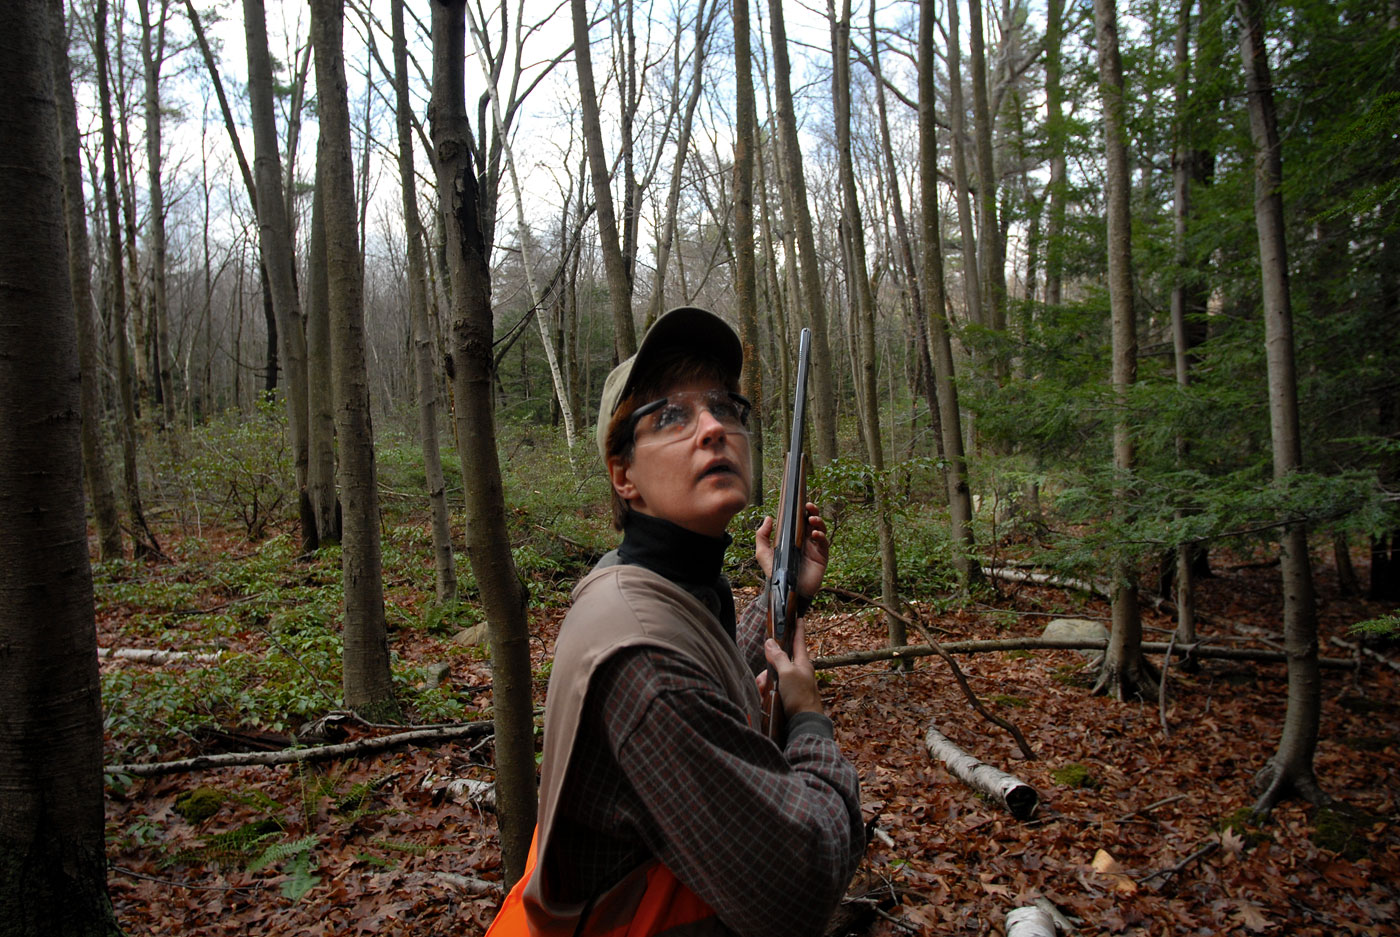 Shirley Jurkowski, of Ellington, watches and waits for a pheasant to be flushed while hunting with friends.  Jurkowski was out hunting with her friend, June Shew.